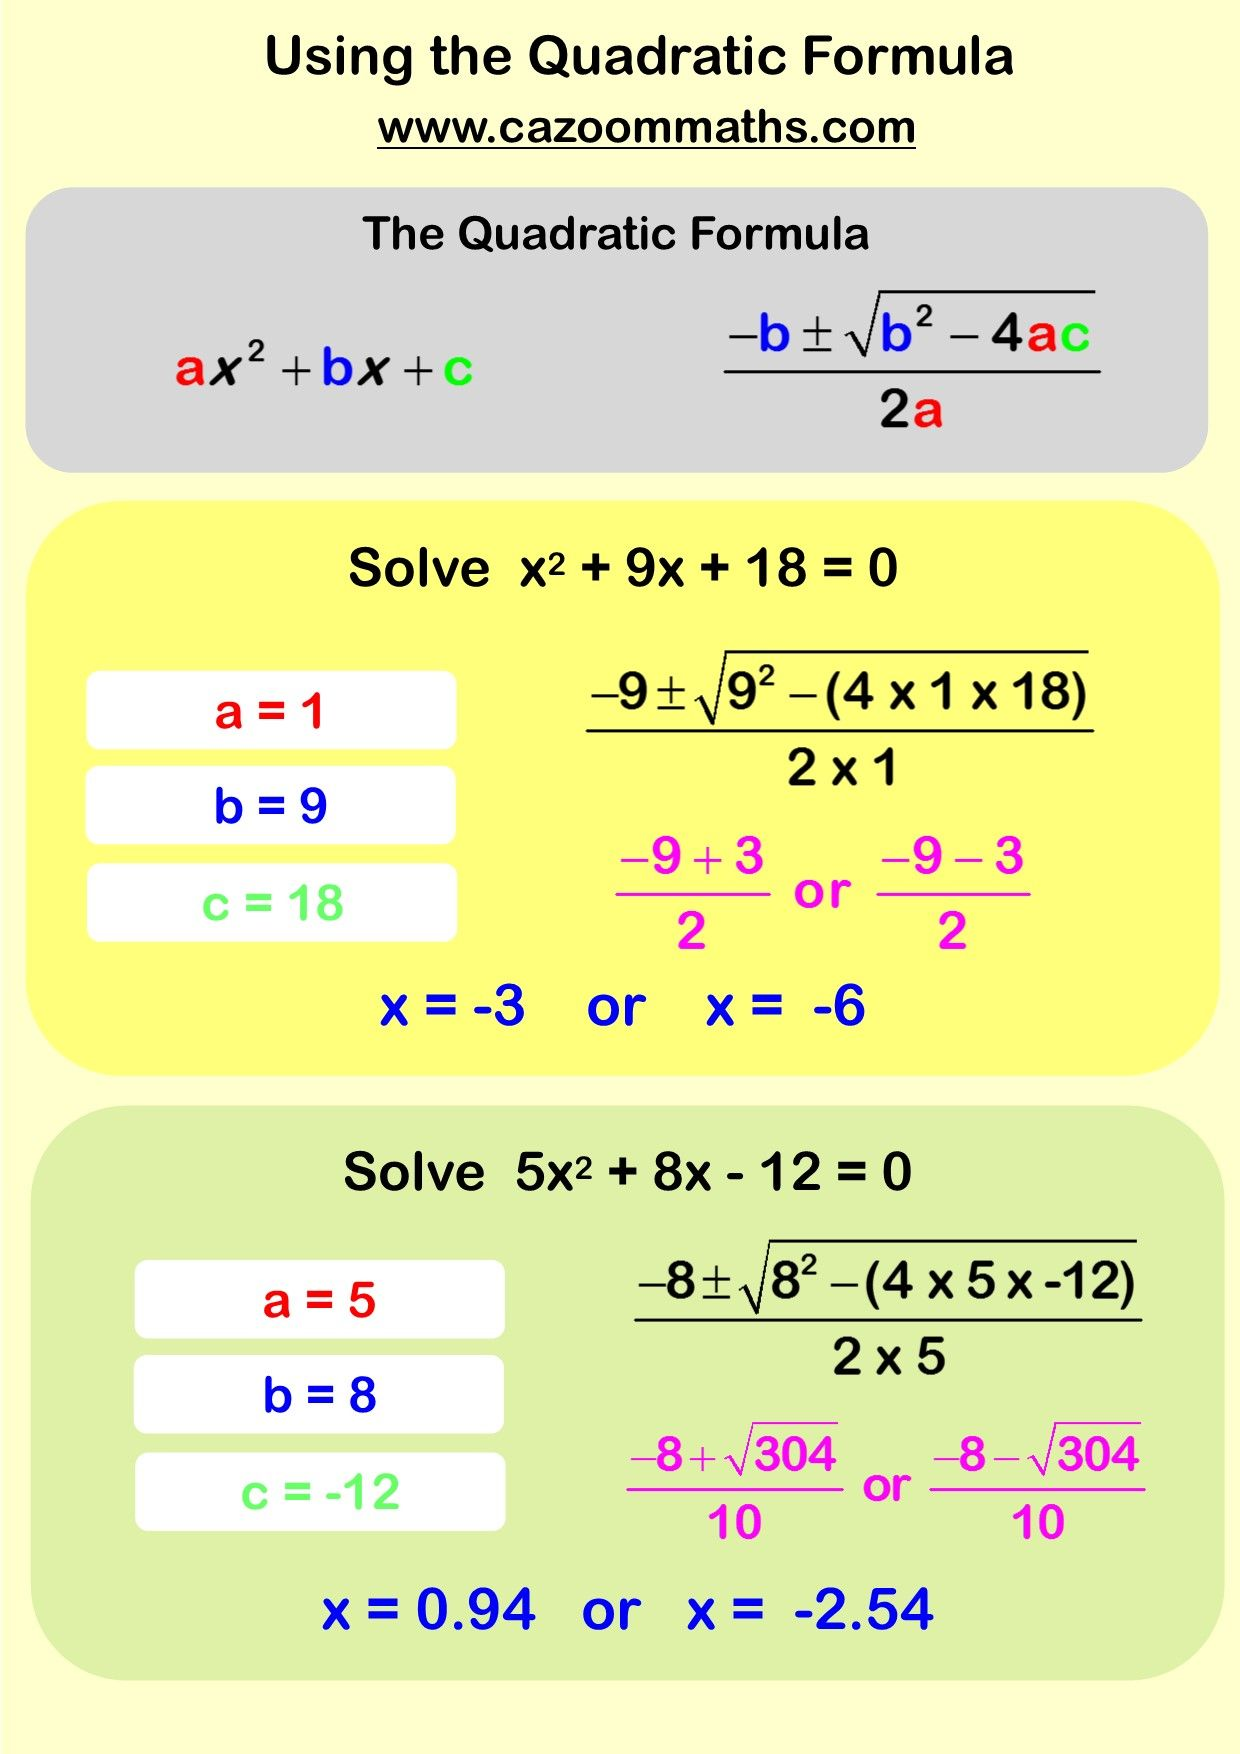 worksheet Solving Equations Worksheets 8th Grade solving linear equations worksheets pdf equation math and algebra printable for teachers kids each worksheet is visual differentiated fun includes a range o